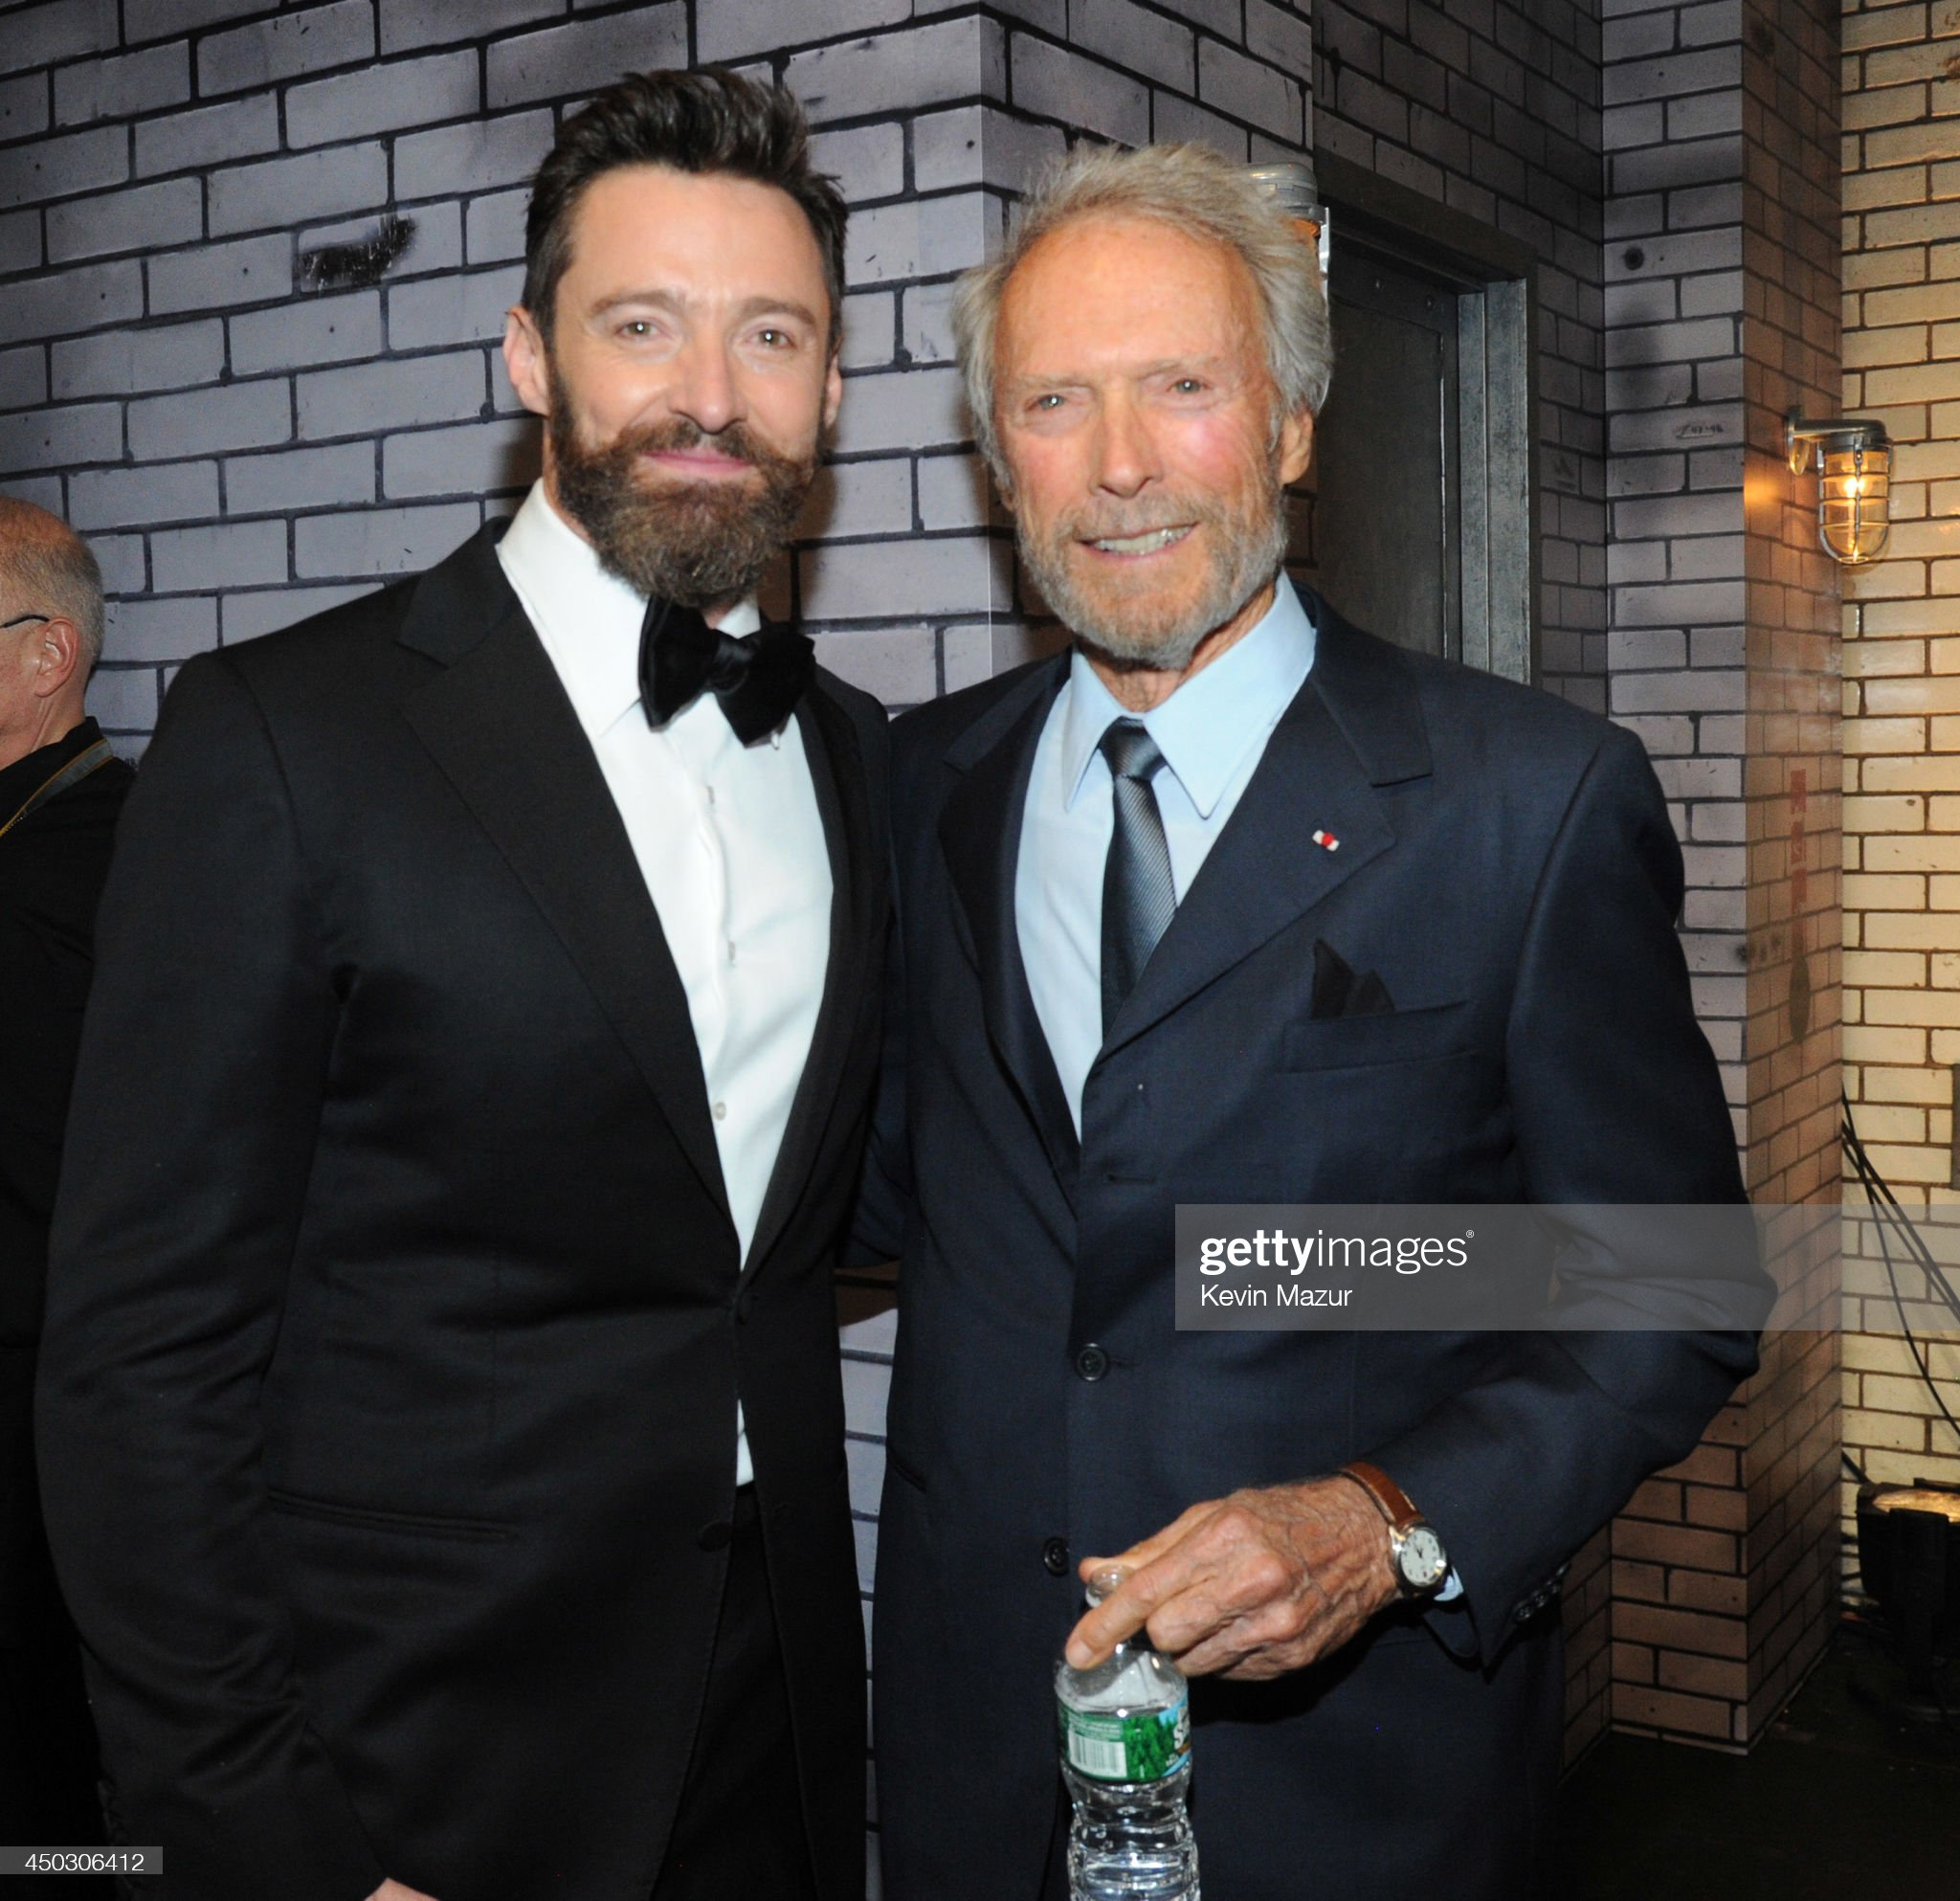 ¿Cuánto mide Hugh Jackman? - Altura - Real height Hugh-jackman-and-clint-eastwood-attend-the-68th-annual-tony-awards-at-picture-id450306412?s=2048x2048